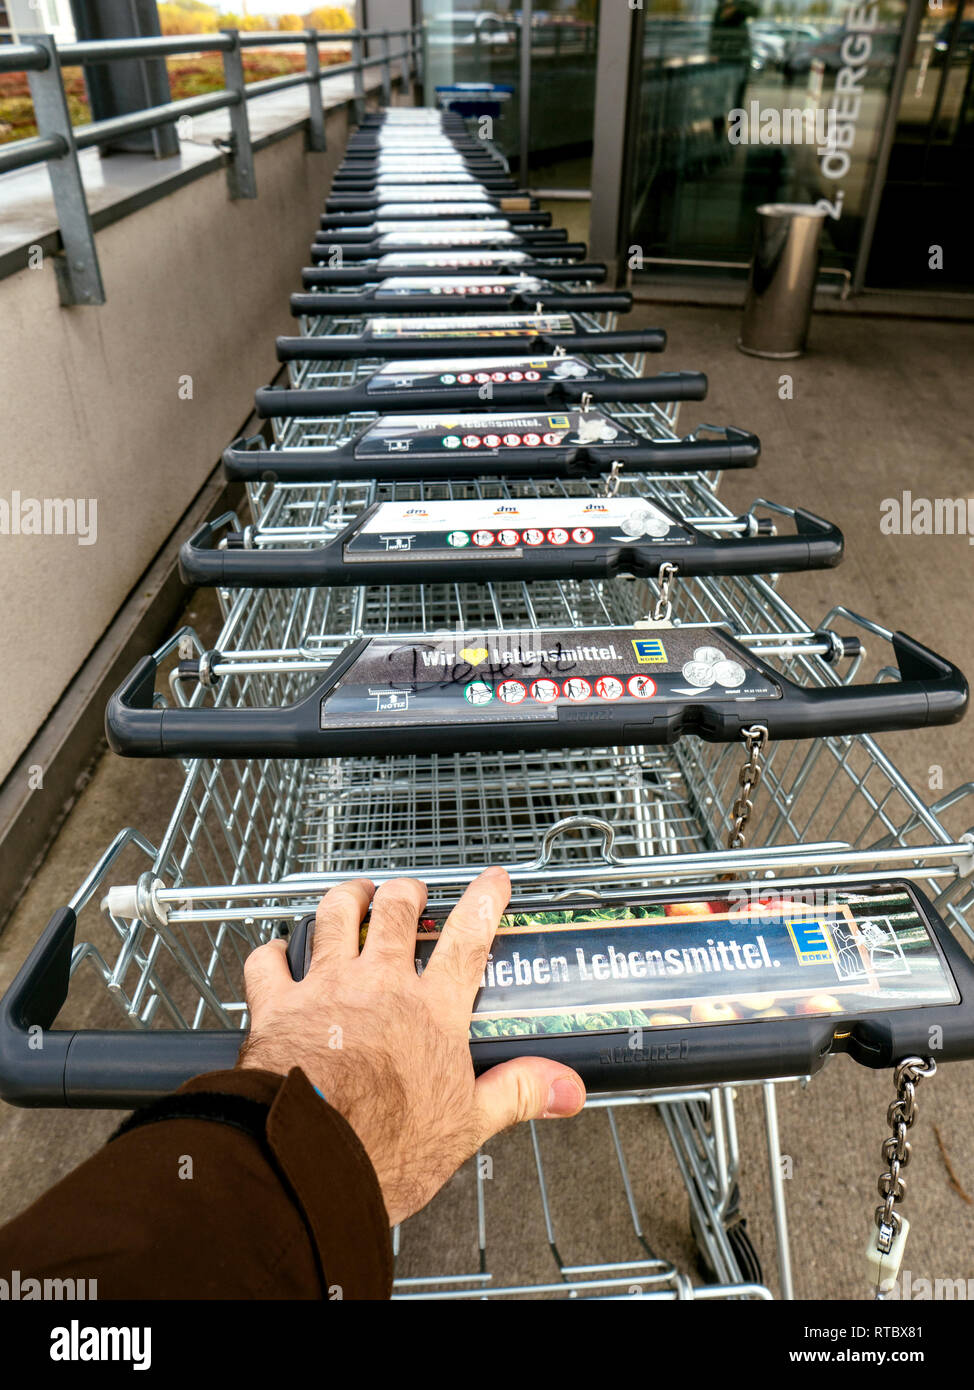 FRANKFURT, GERMANY - NOV 4, 2017: Man hand POV over the WANZL supermarket cart in front of the entrance with Eingang sign to the Edeka store - paying for the rent of the cart  - Stock Image